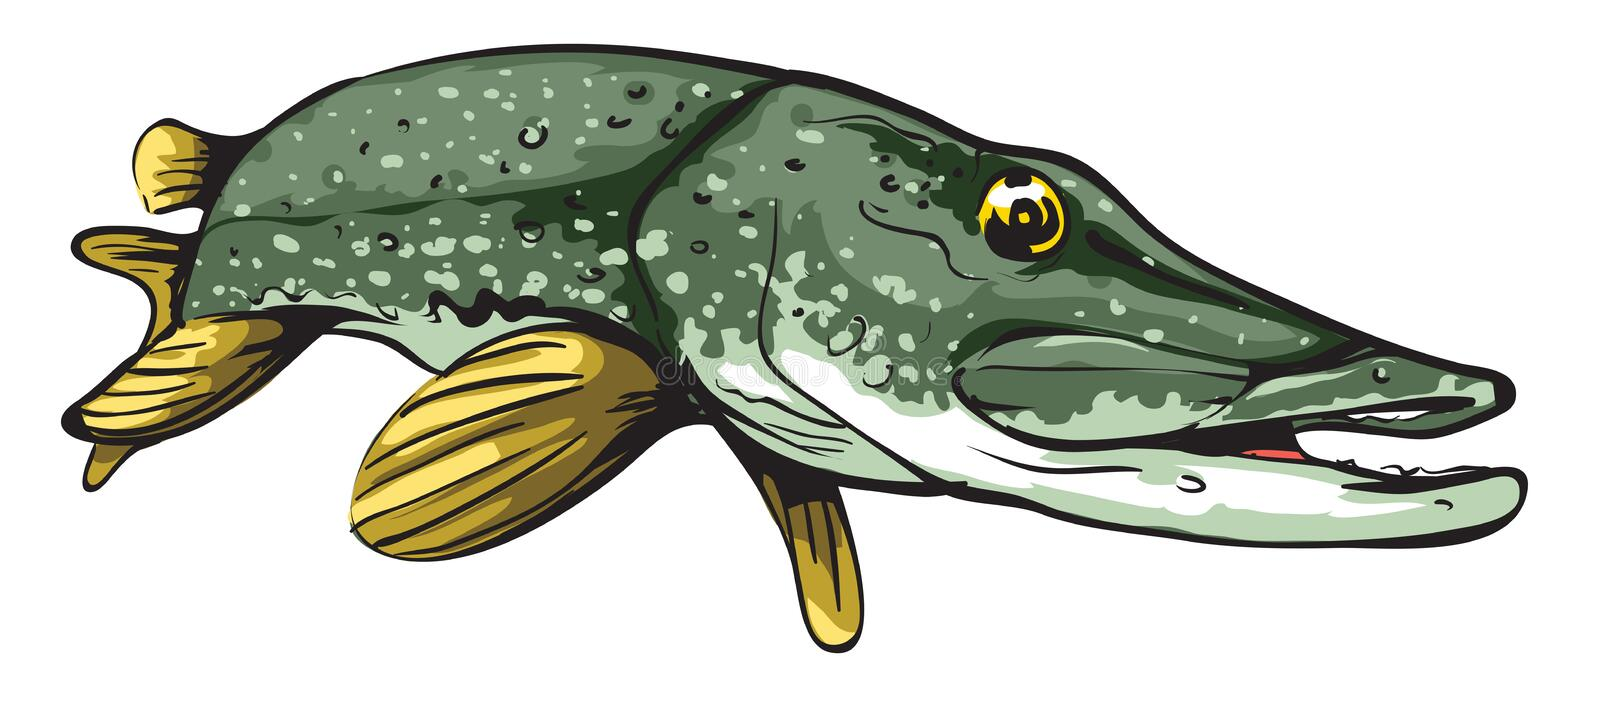 Pike fish royalty free illustration